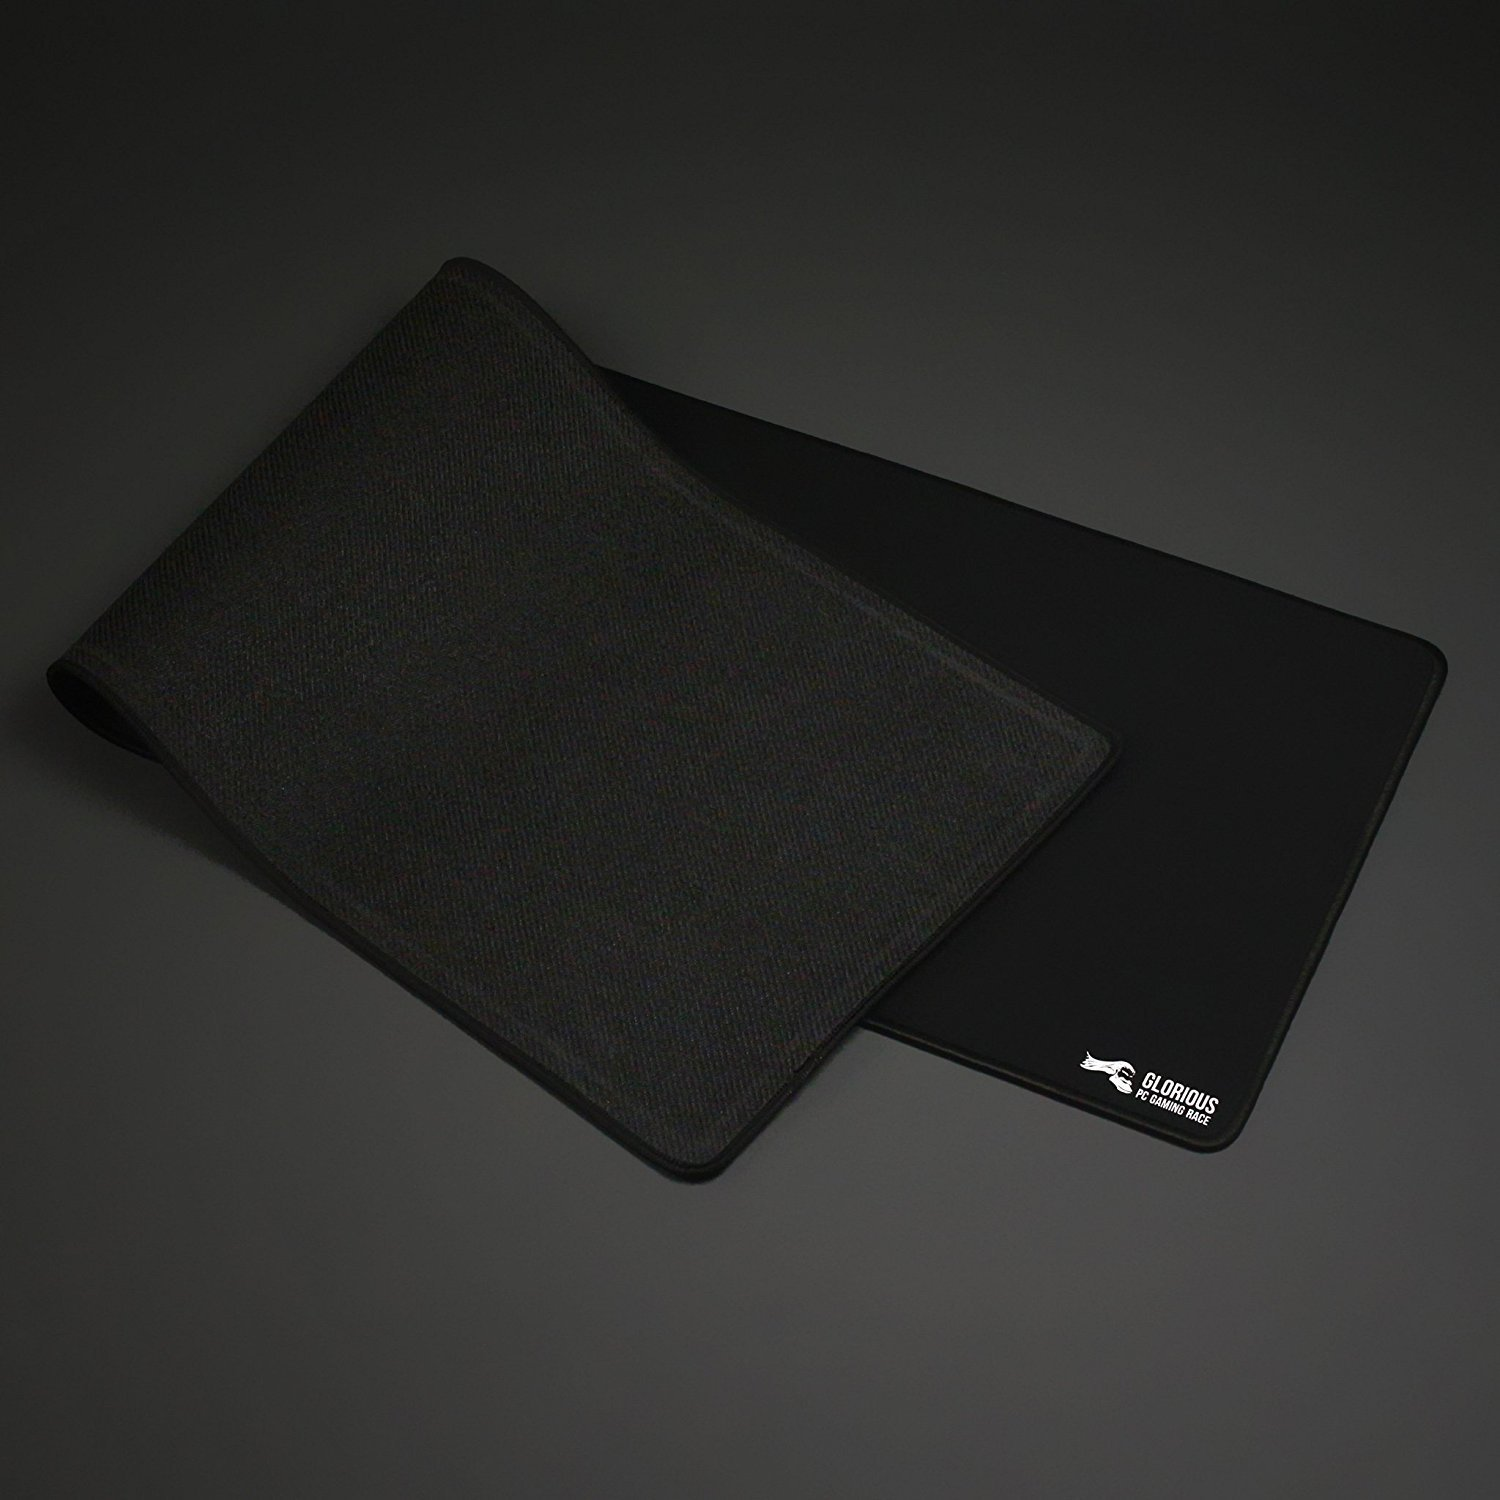 office chair parts where to buy covers in singapore tecware haste xxl extended mousemat   bermor techzone